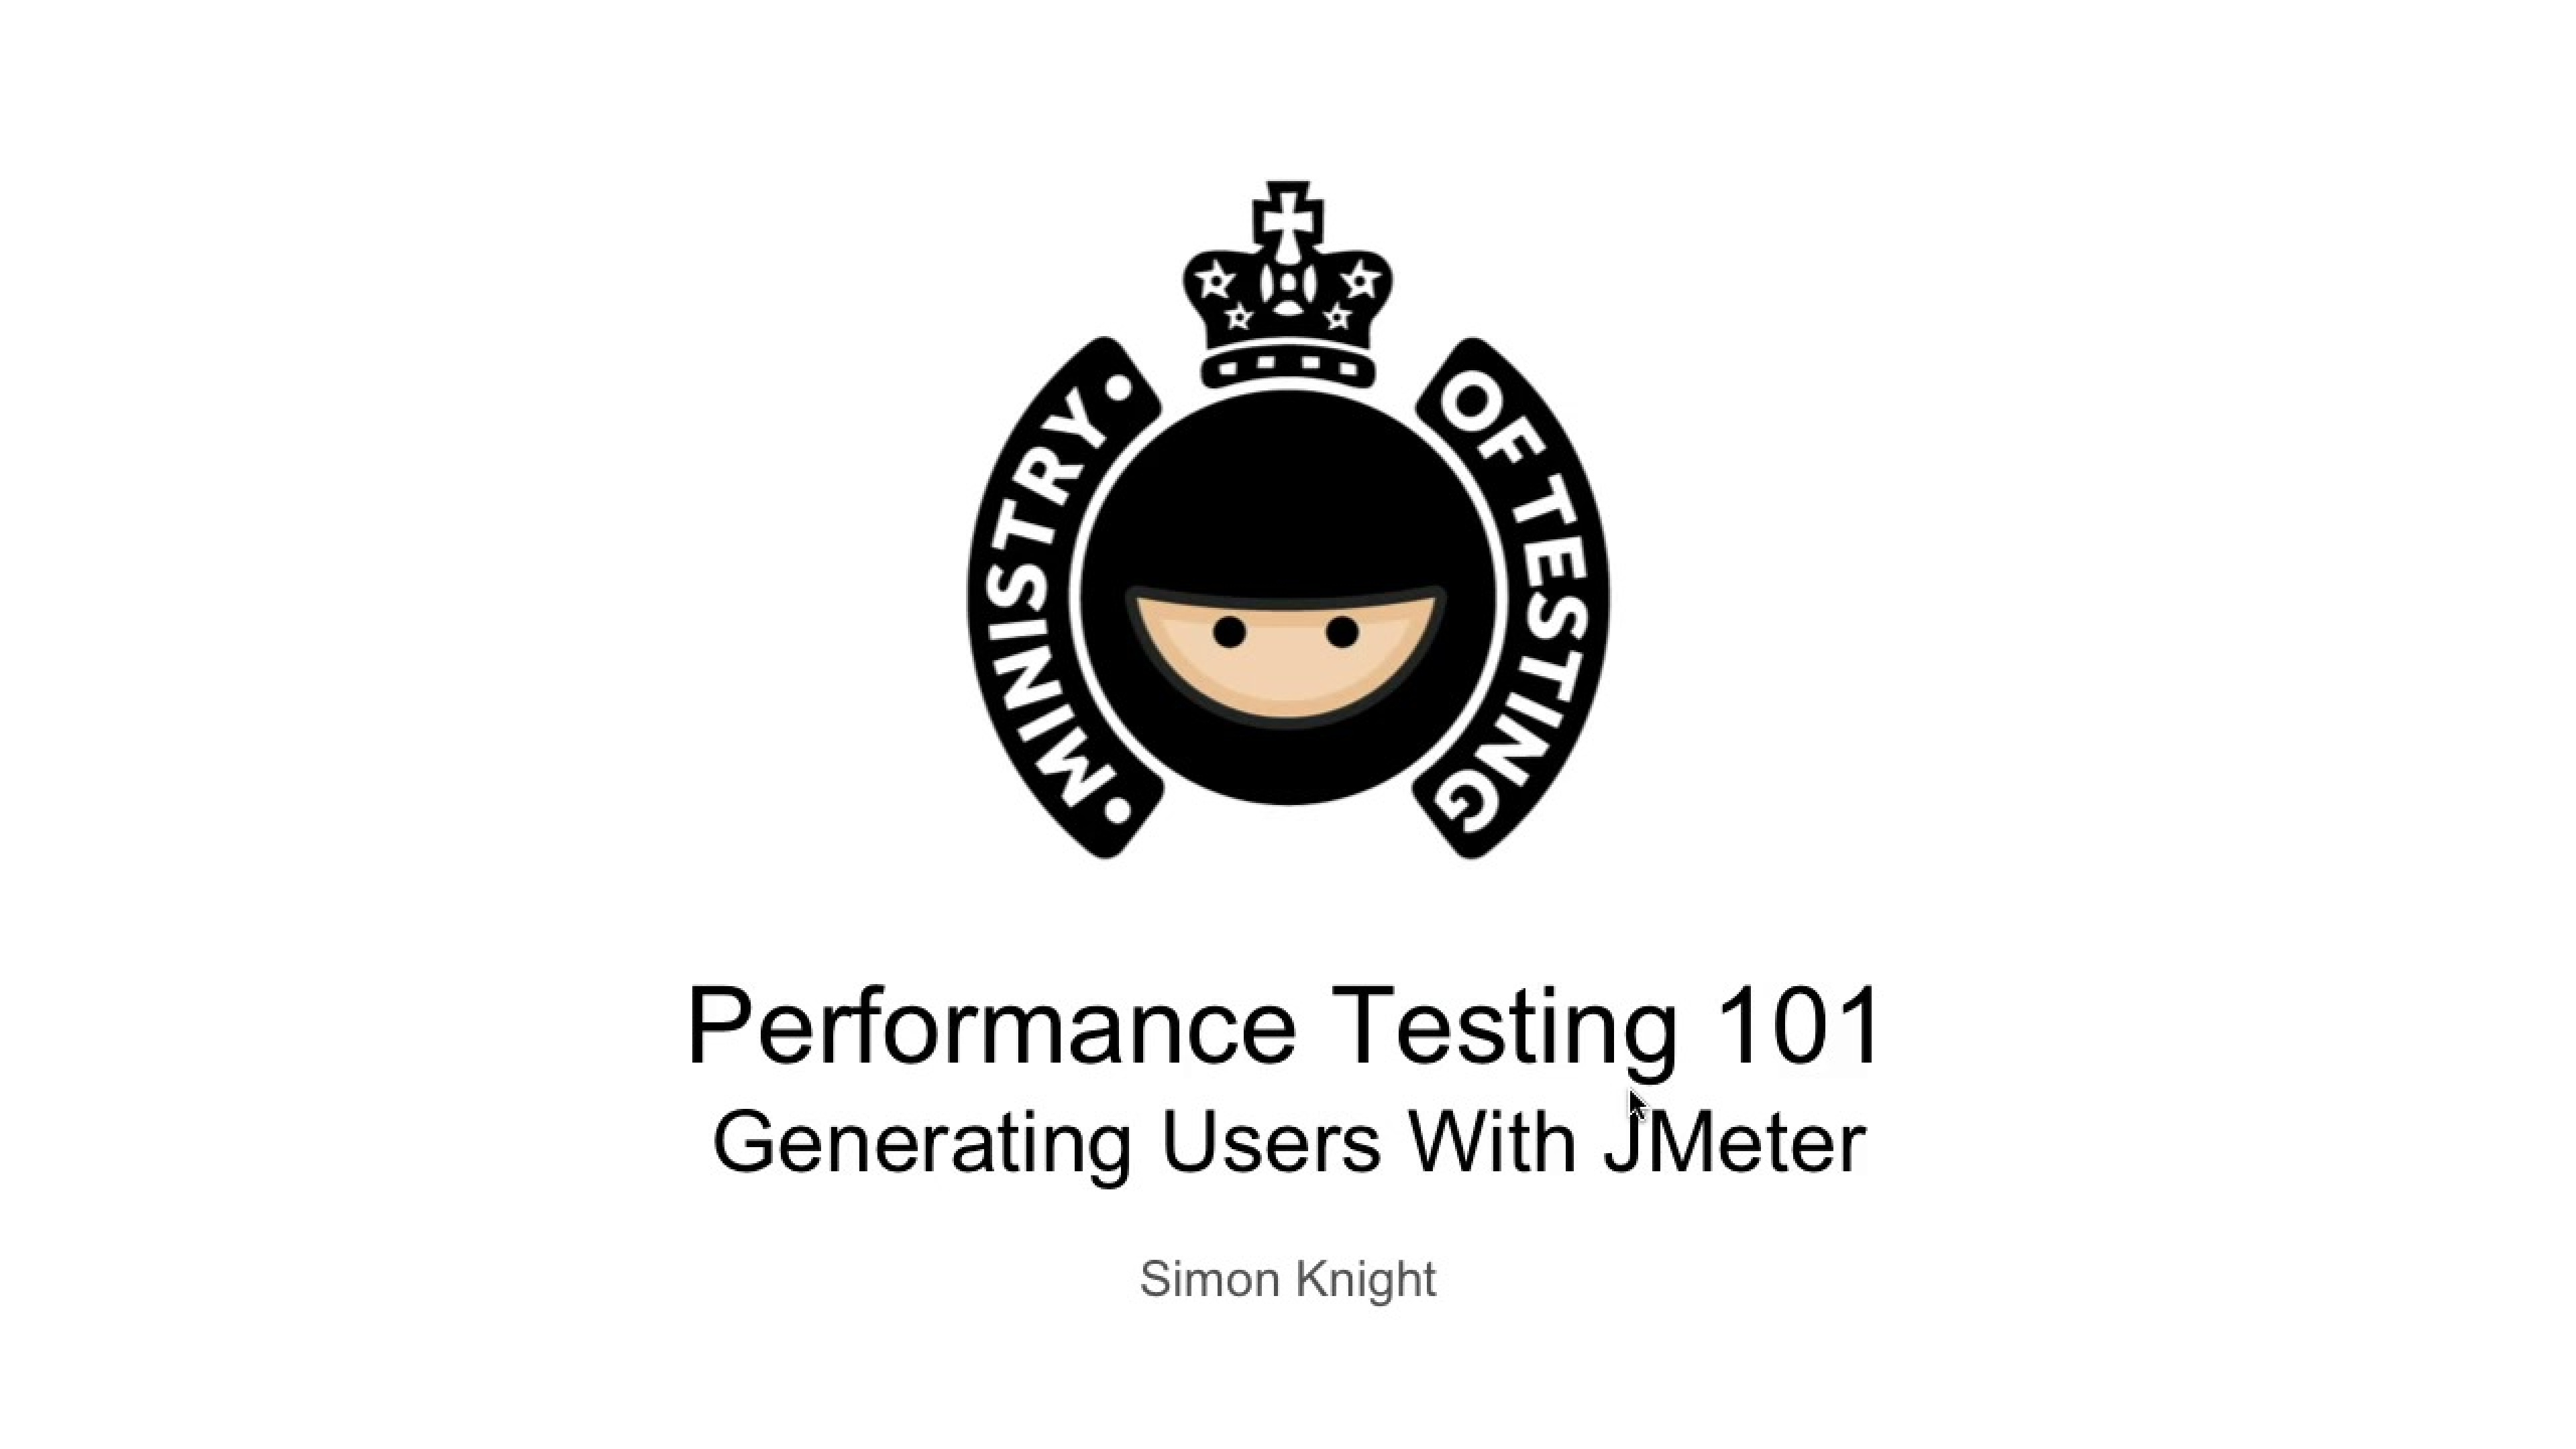 Generating Users With JMeter